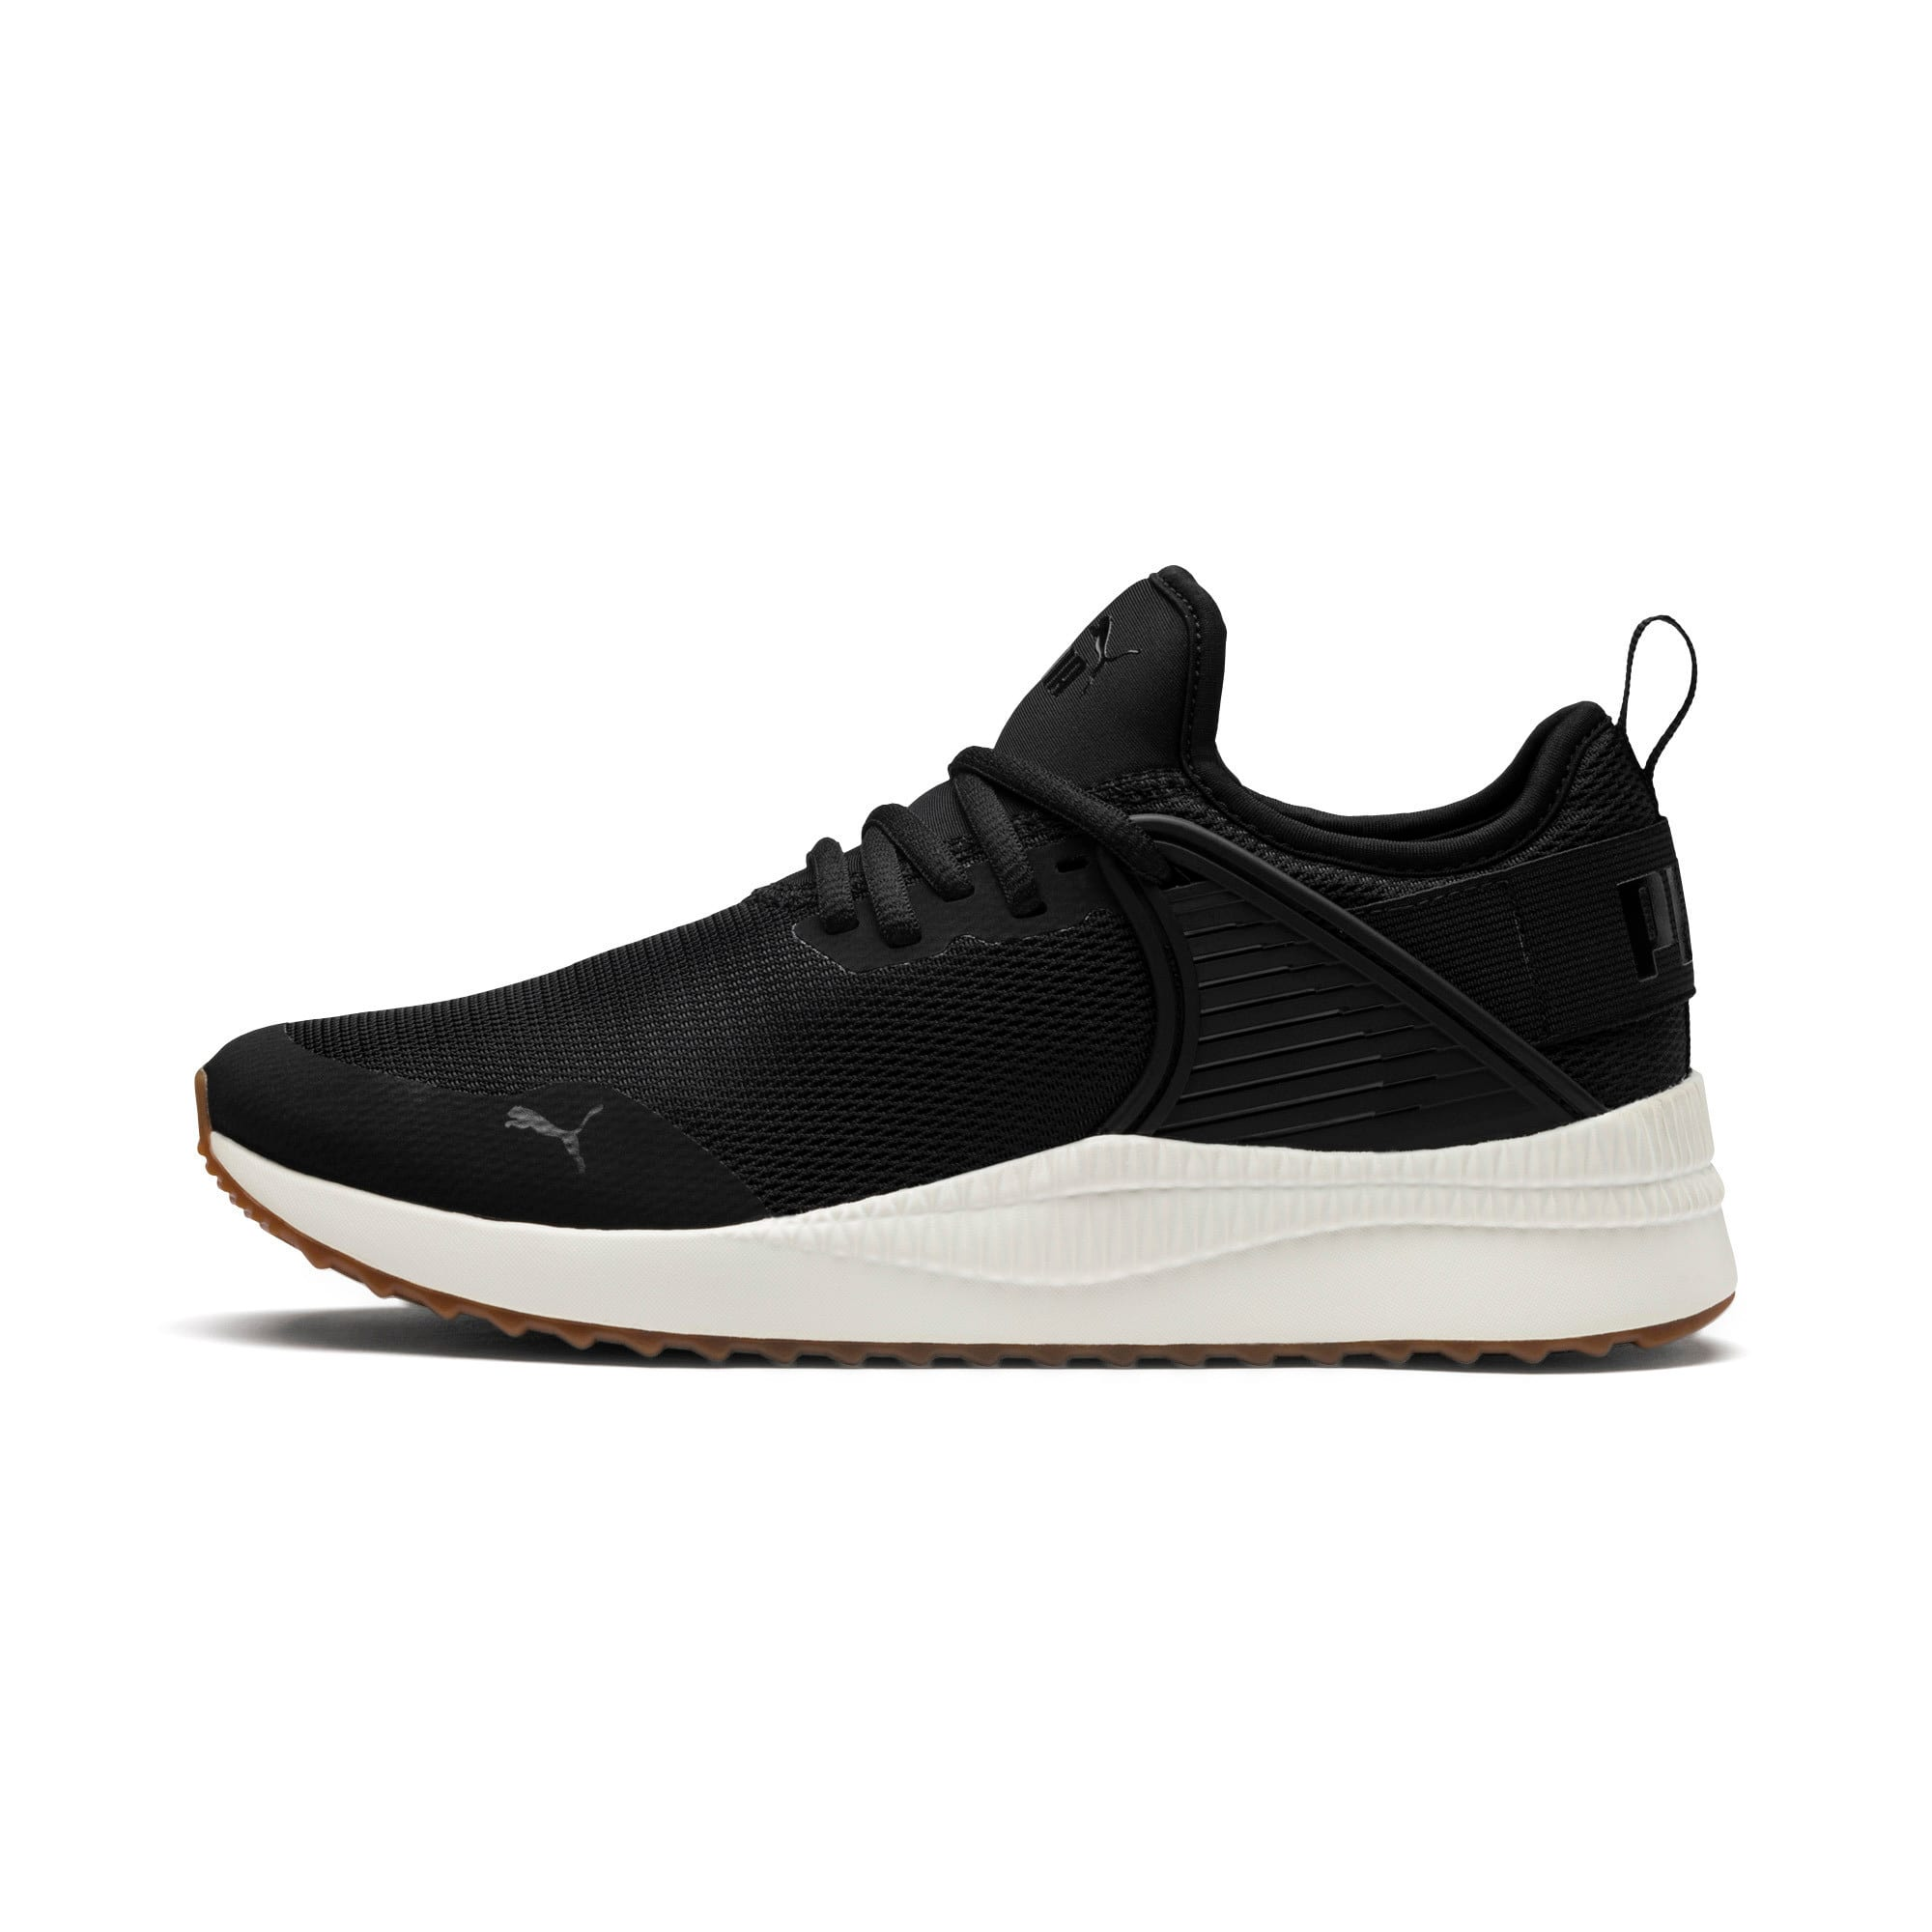 Thumbnail 1 of Pacer Next Cage Sneakers, P. Black-P. Black-Whis.White, medium